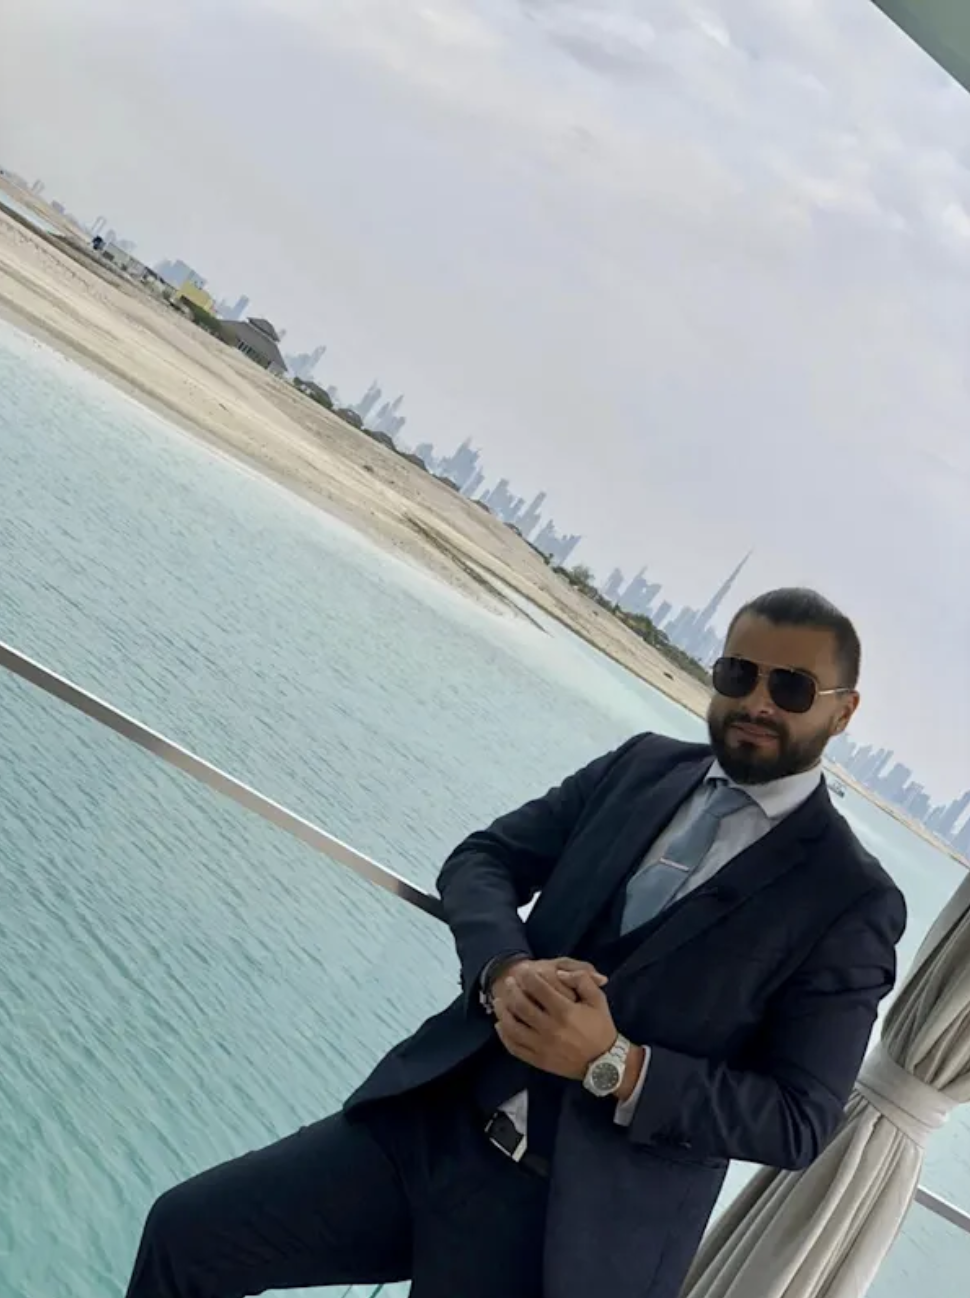 Anthony Joseph Abou Jaoude Sets Sight on Dominating Dubai Real Estate, to Publish First Book and Start Real Estate Academy